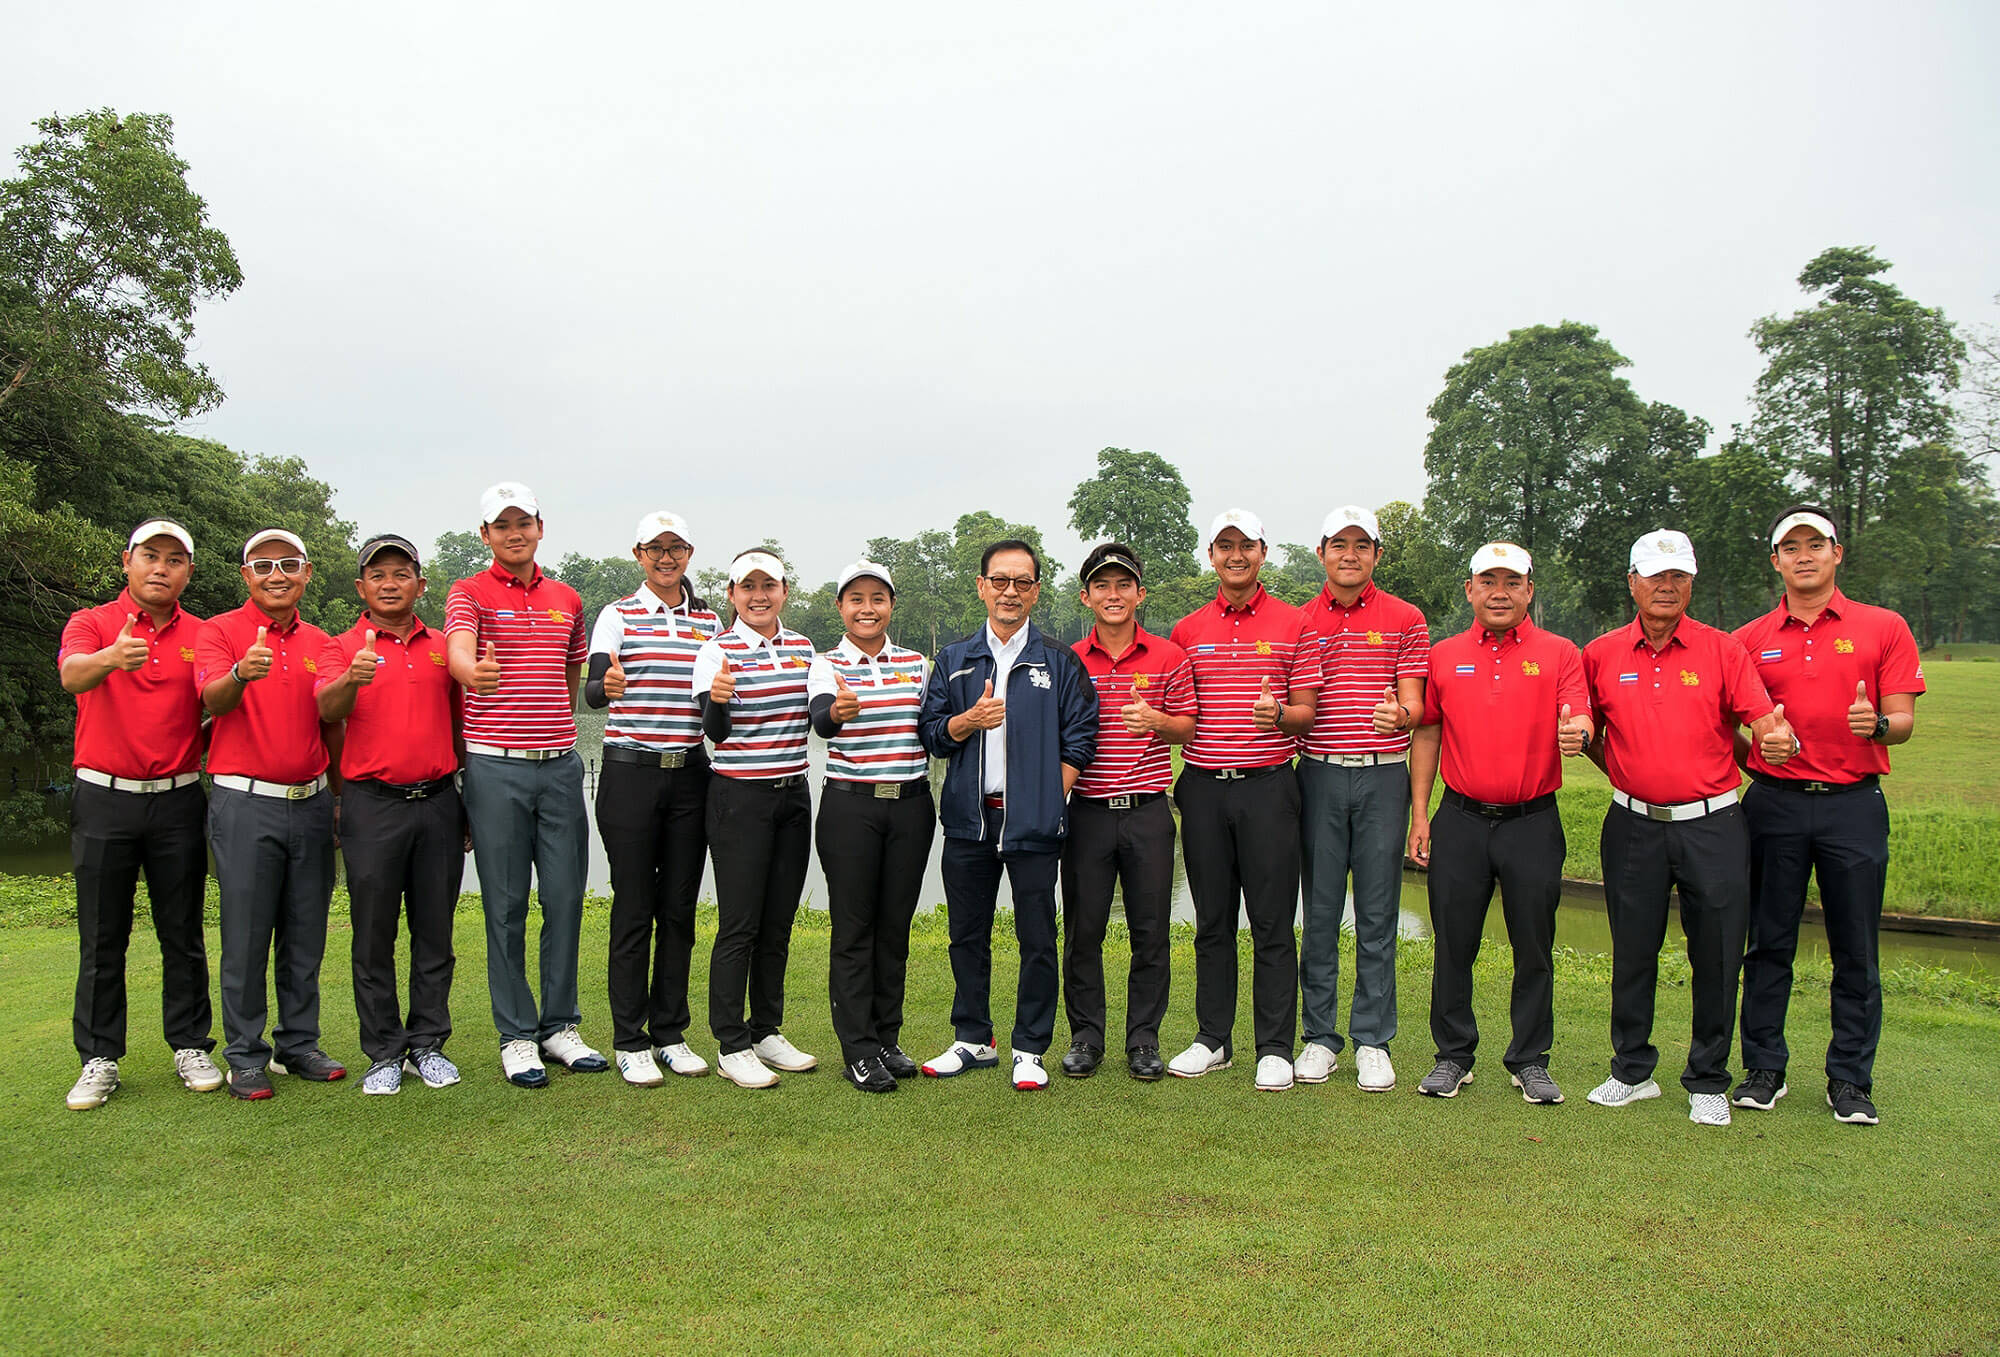 golfdiggtoday_golf_asiangames2018_thailand_PondokIndahGolf_02